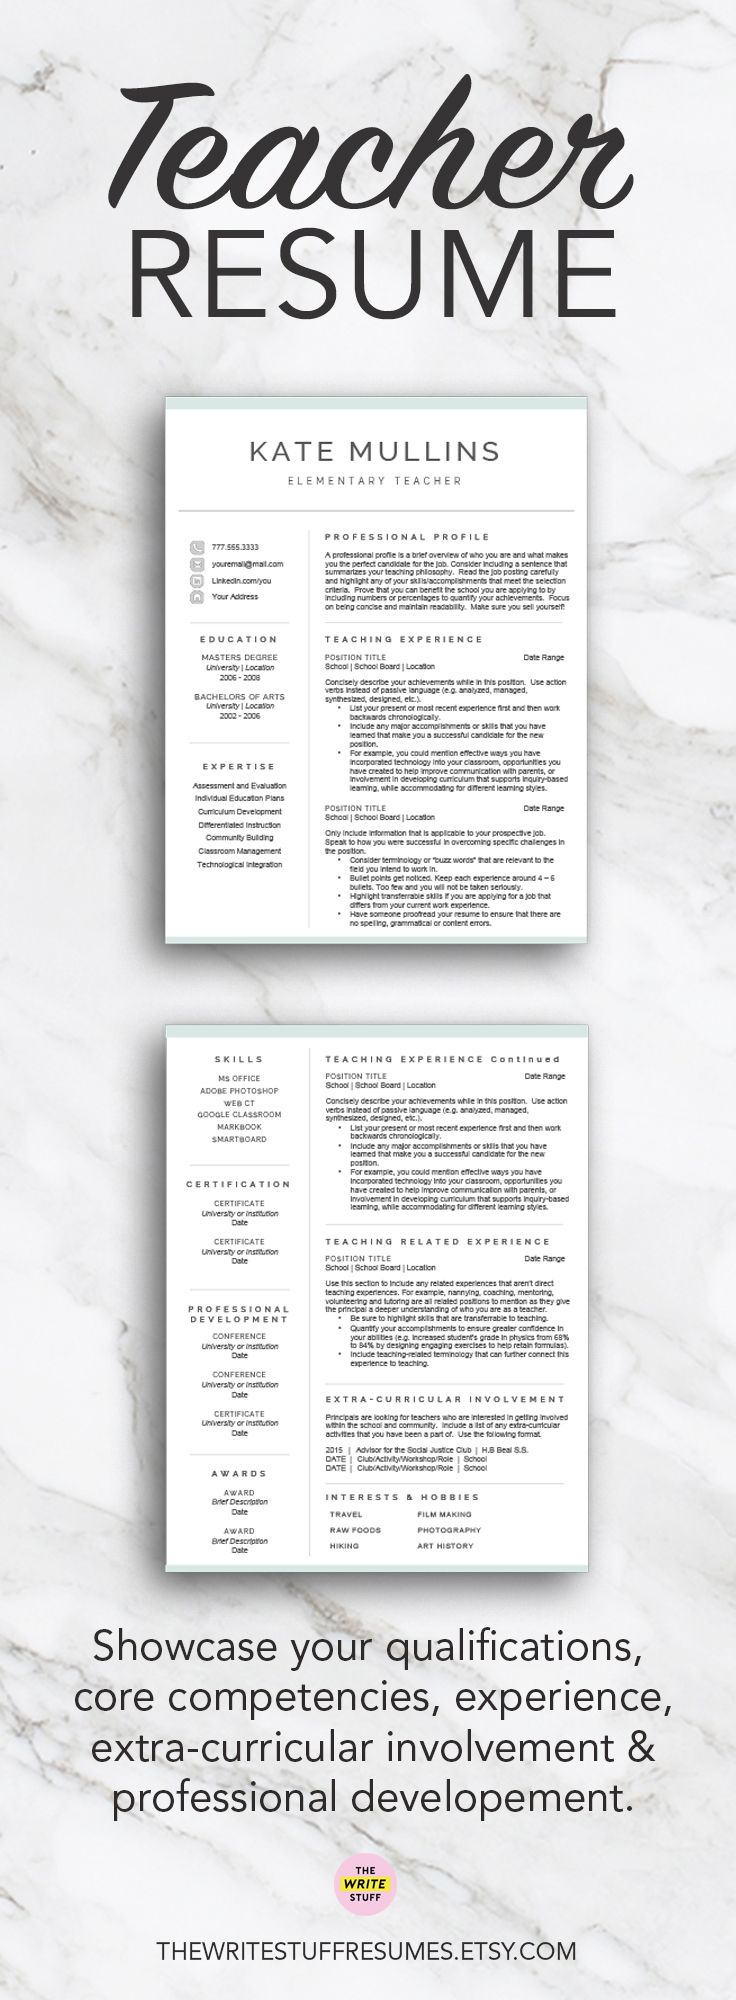 Teacher resume template for Word and Pages | Educator Resume | Cover Letter